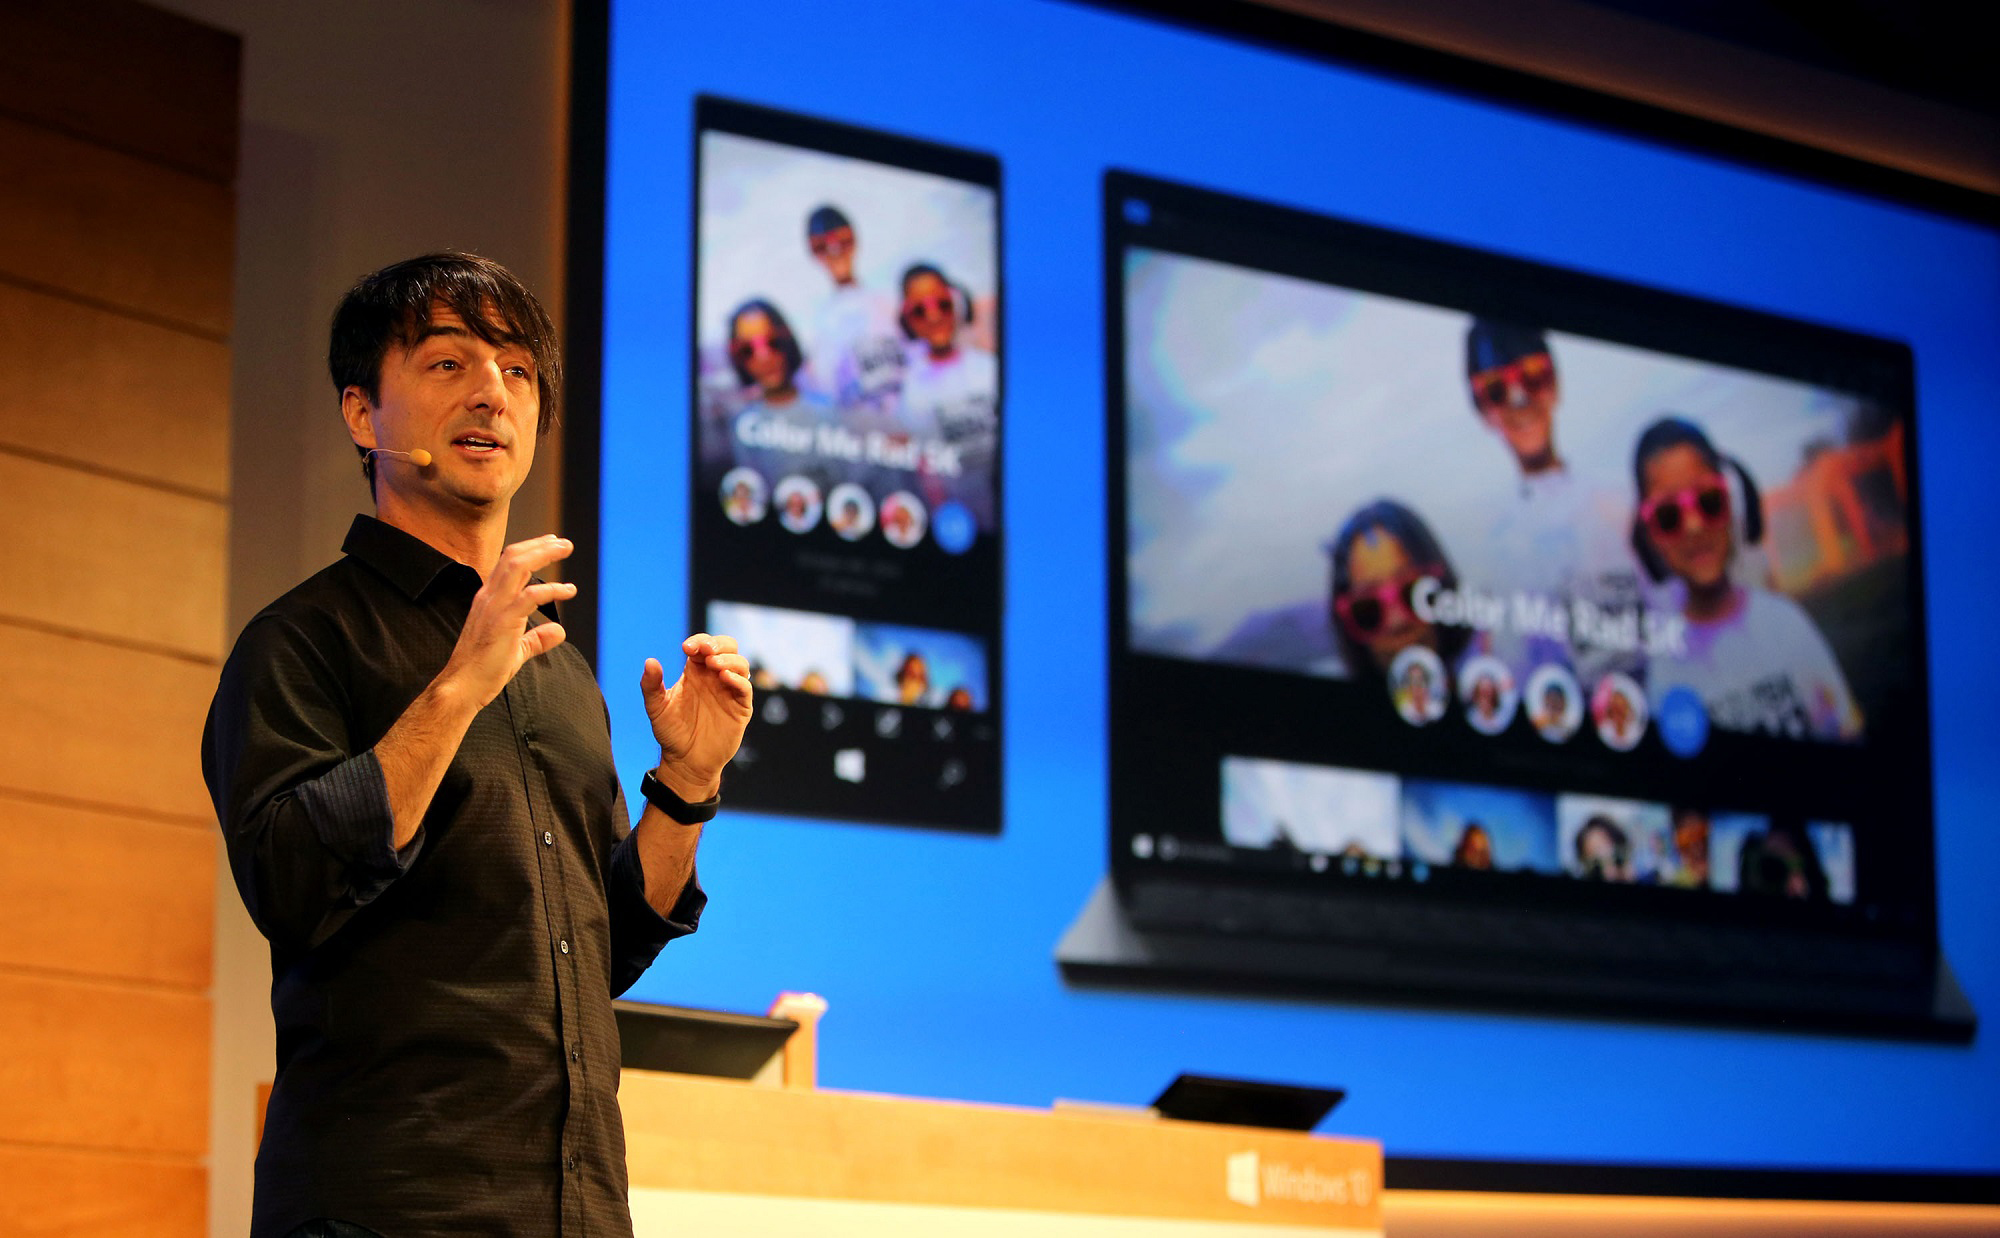 Joe Belfiore, Corporate Vice President of Microsoft's Operating Systems Group, introduces Windows 10.